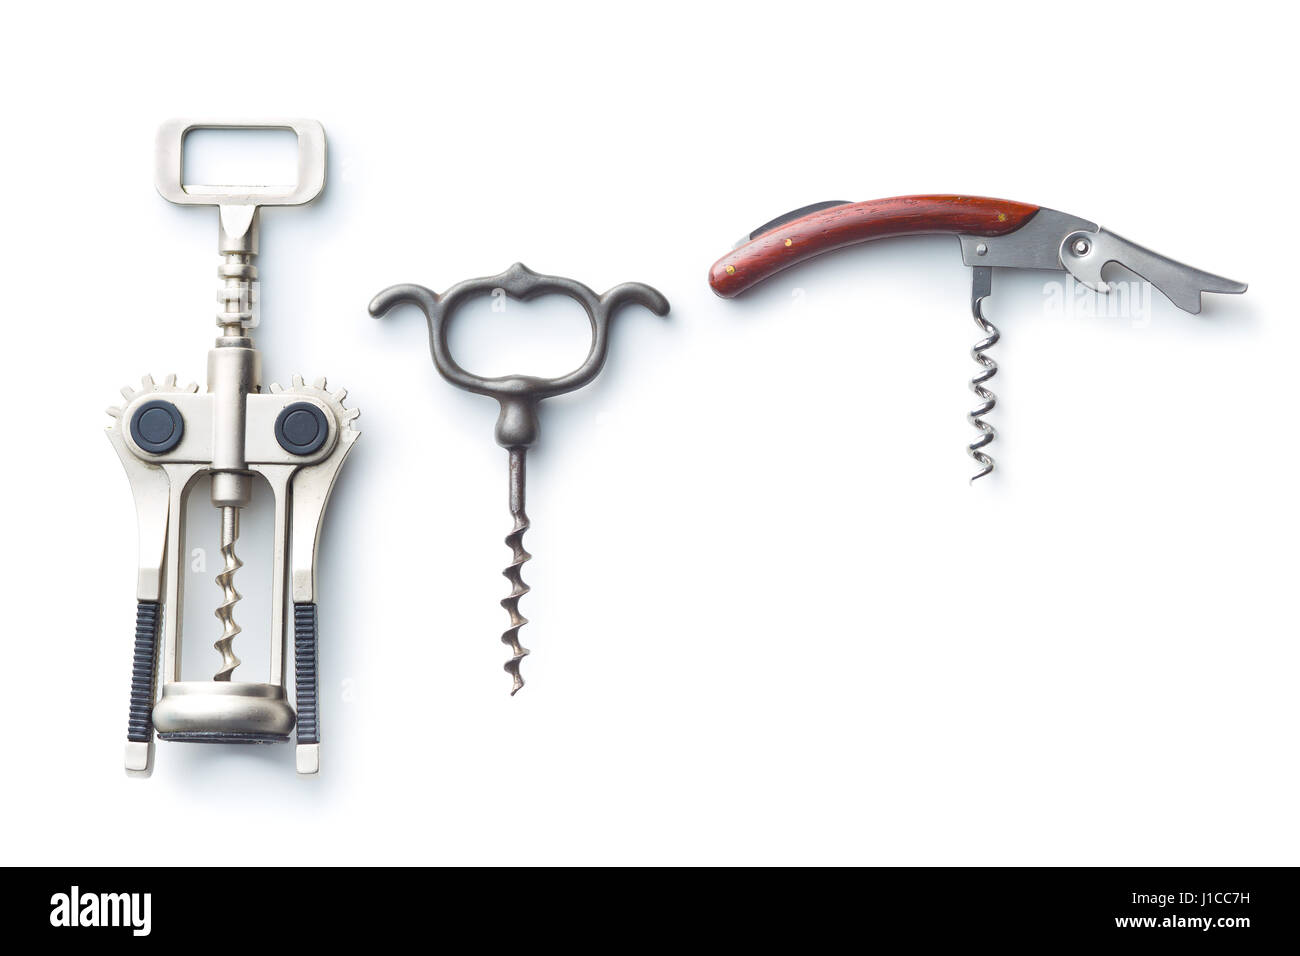 Various types of corkscrews isolated on white background. - Stock Image